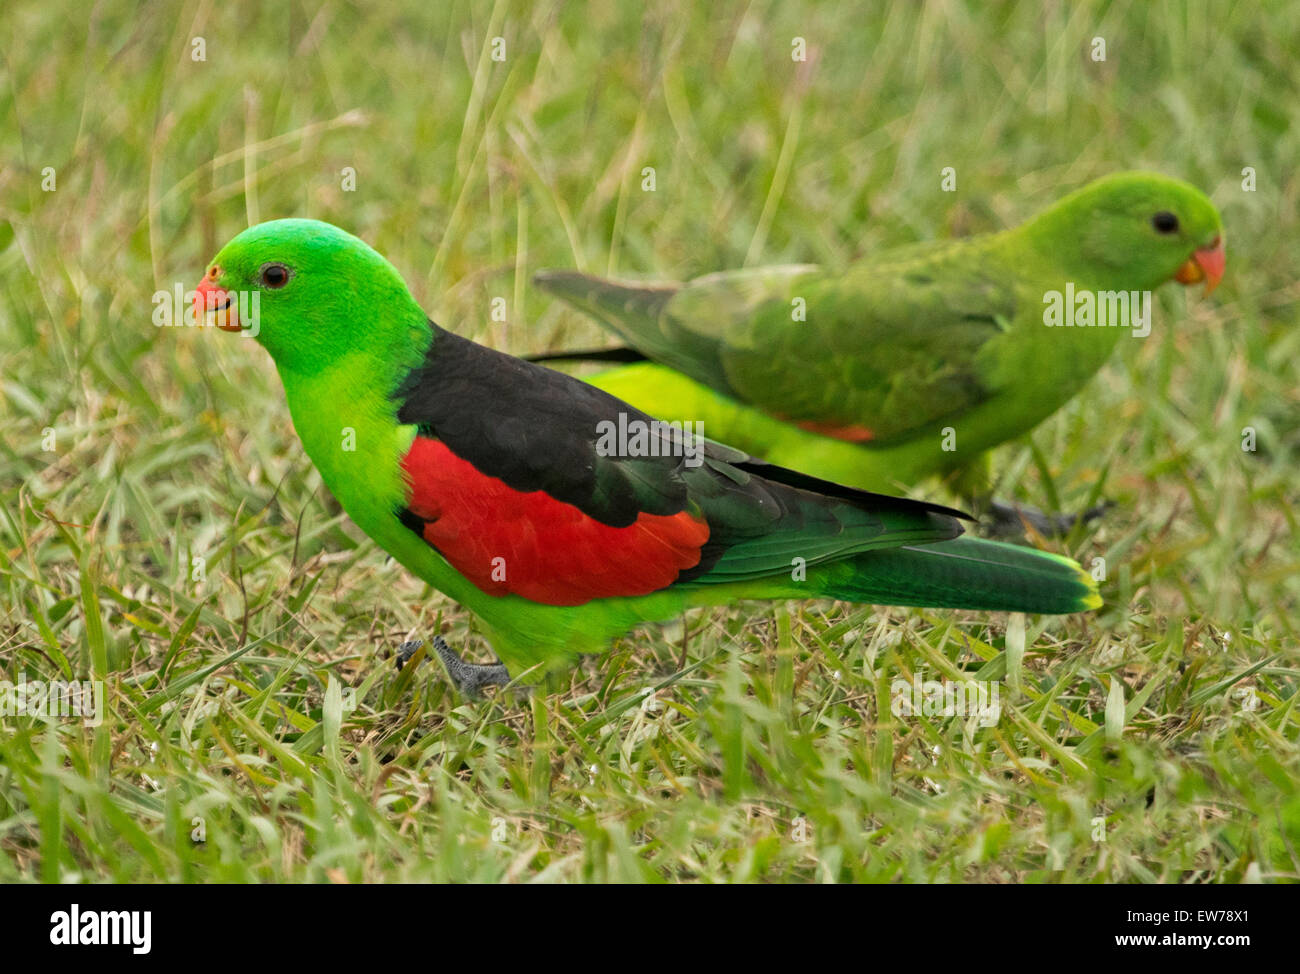 Spectacular male and female red-winged parrots Aprosmictus erythropterus, Australian native wild birds on lawn in - Stock Image